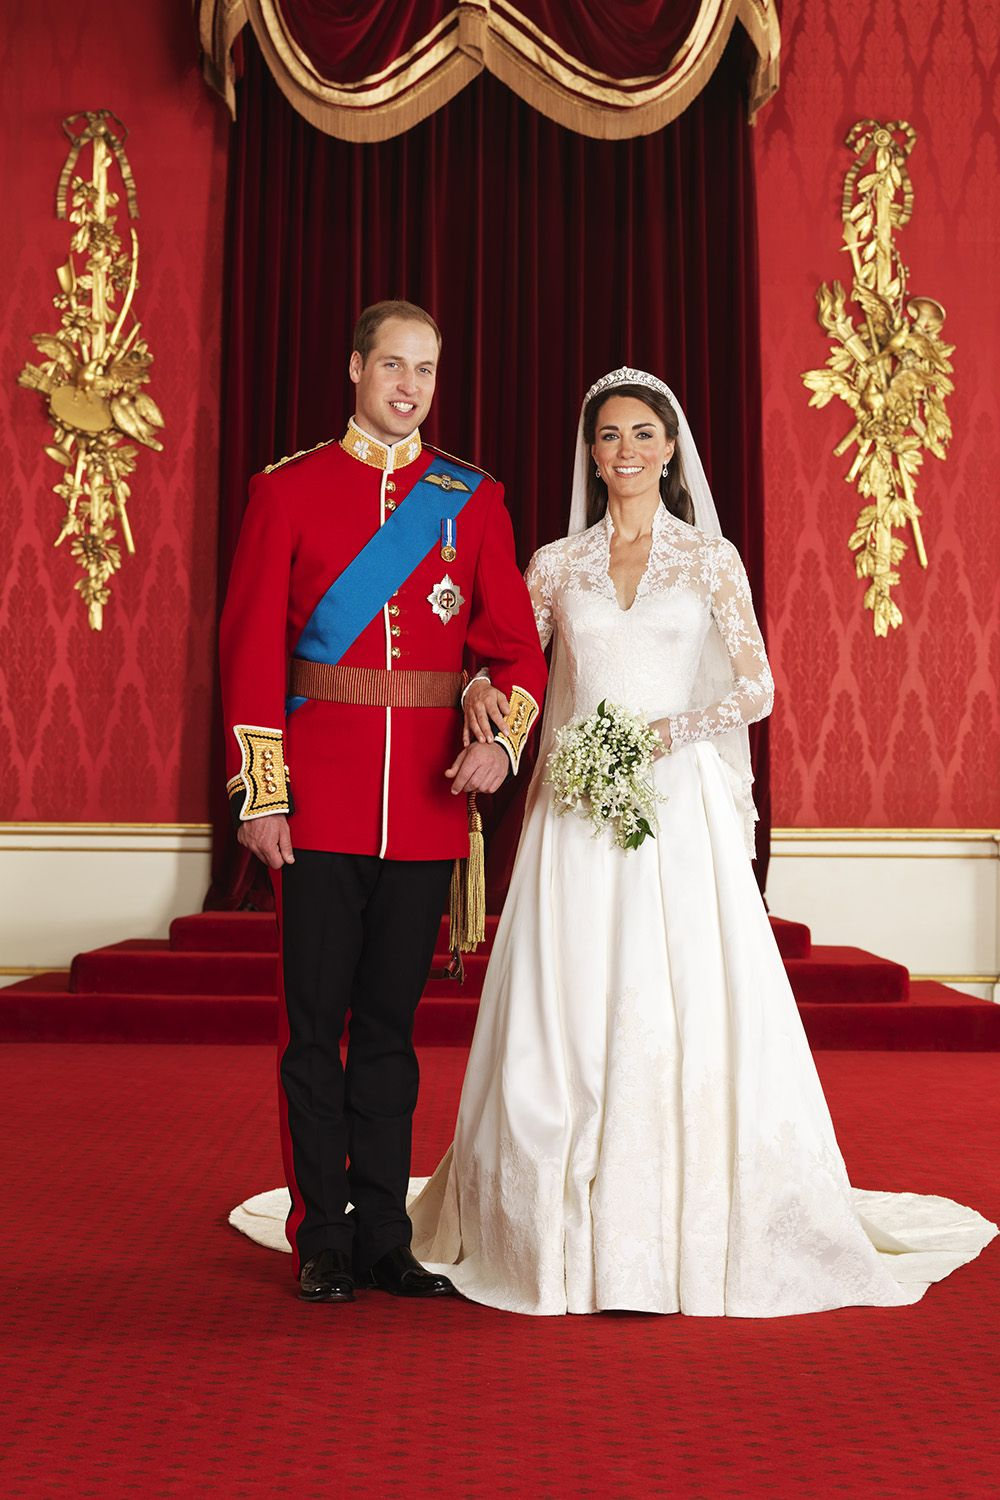 Prince William and Kate Middleton's Royal Wedding Album